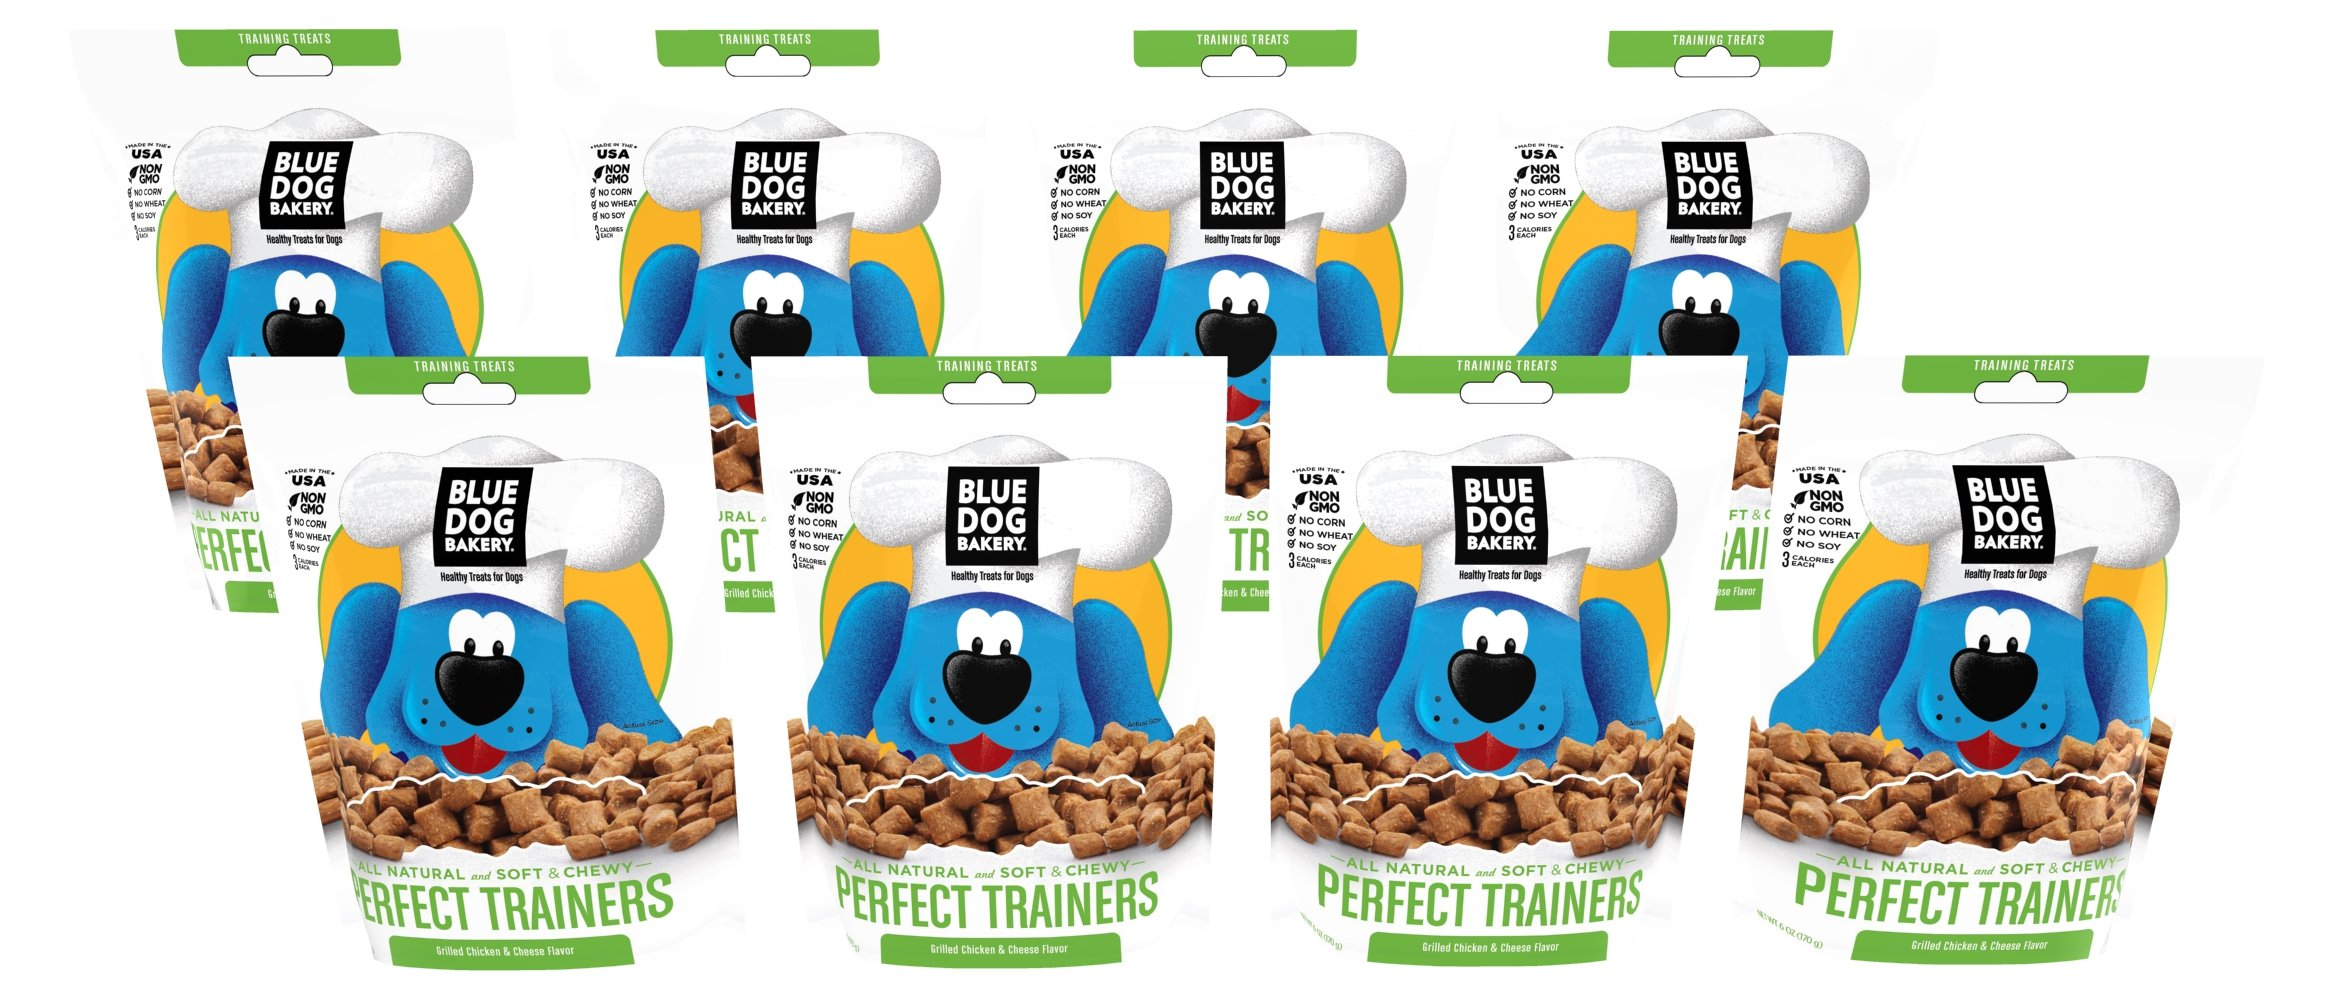 Blue Dog Bakery | Soft & Chewy Dog Treats | All-Natural | Training Aid | 6oz (Pack of 8) by Blue Dog Bakery